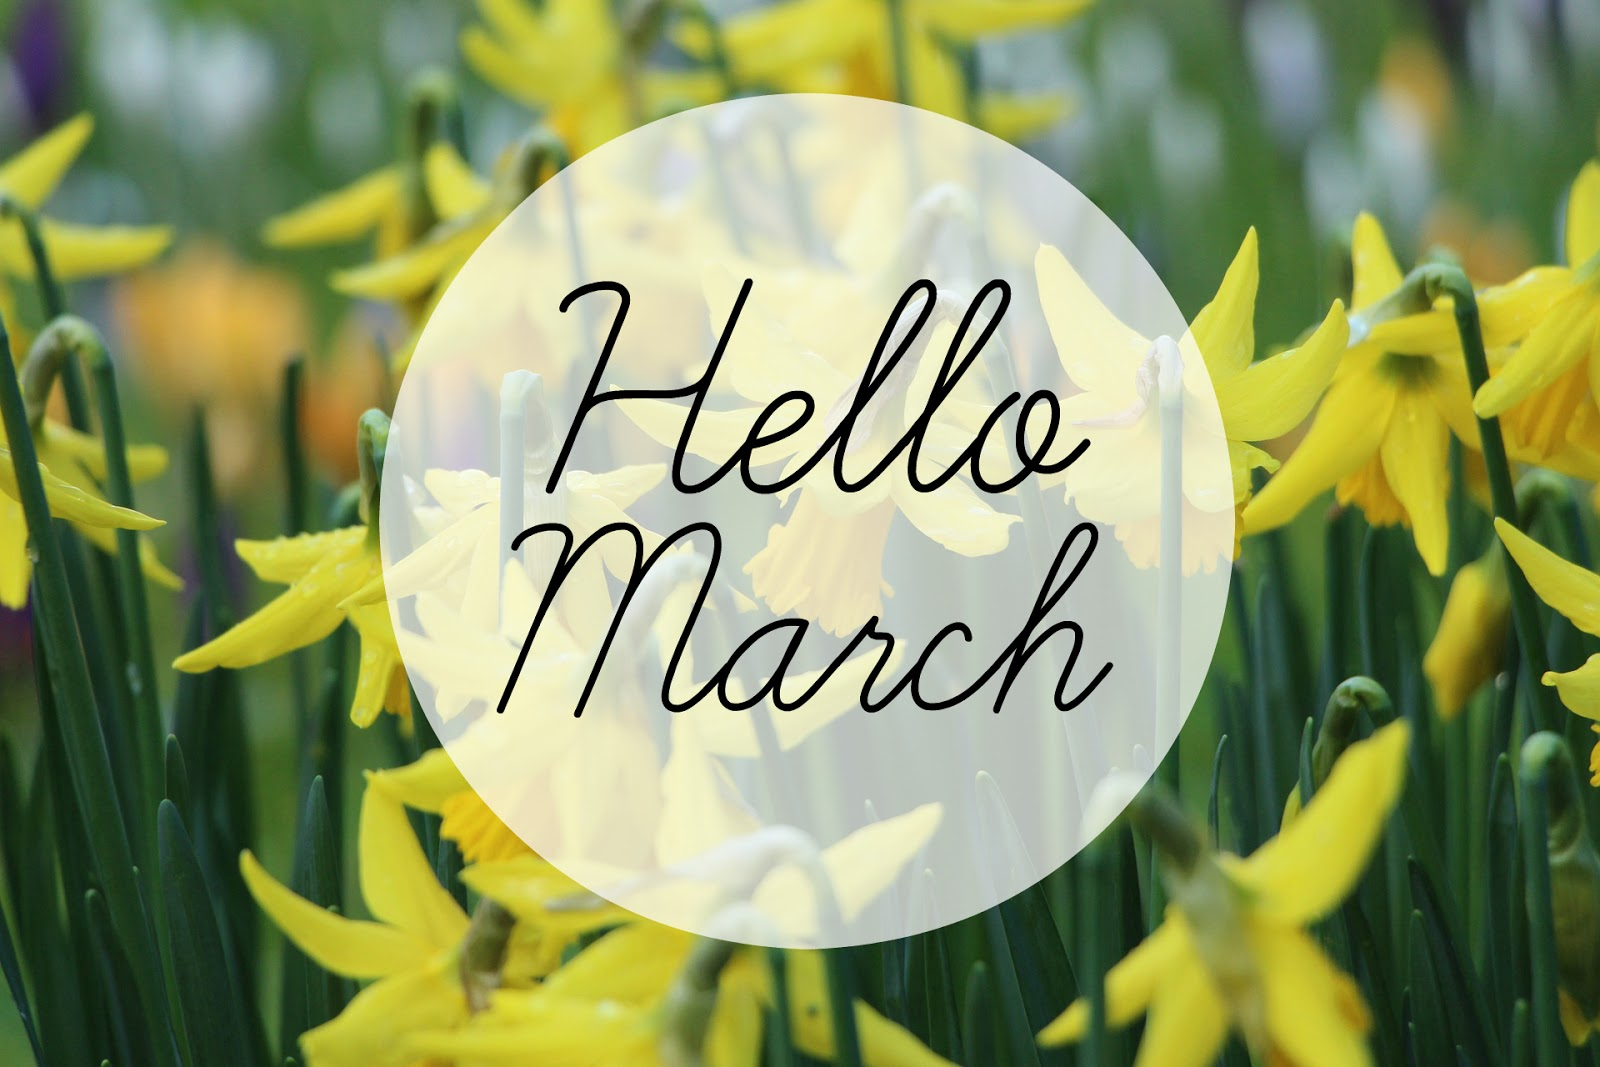 Formidable Joy | Formidable Joy Blog | Lifestyle | March | Hello March